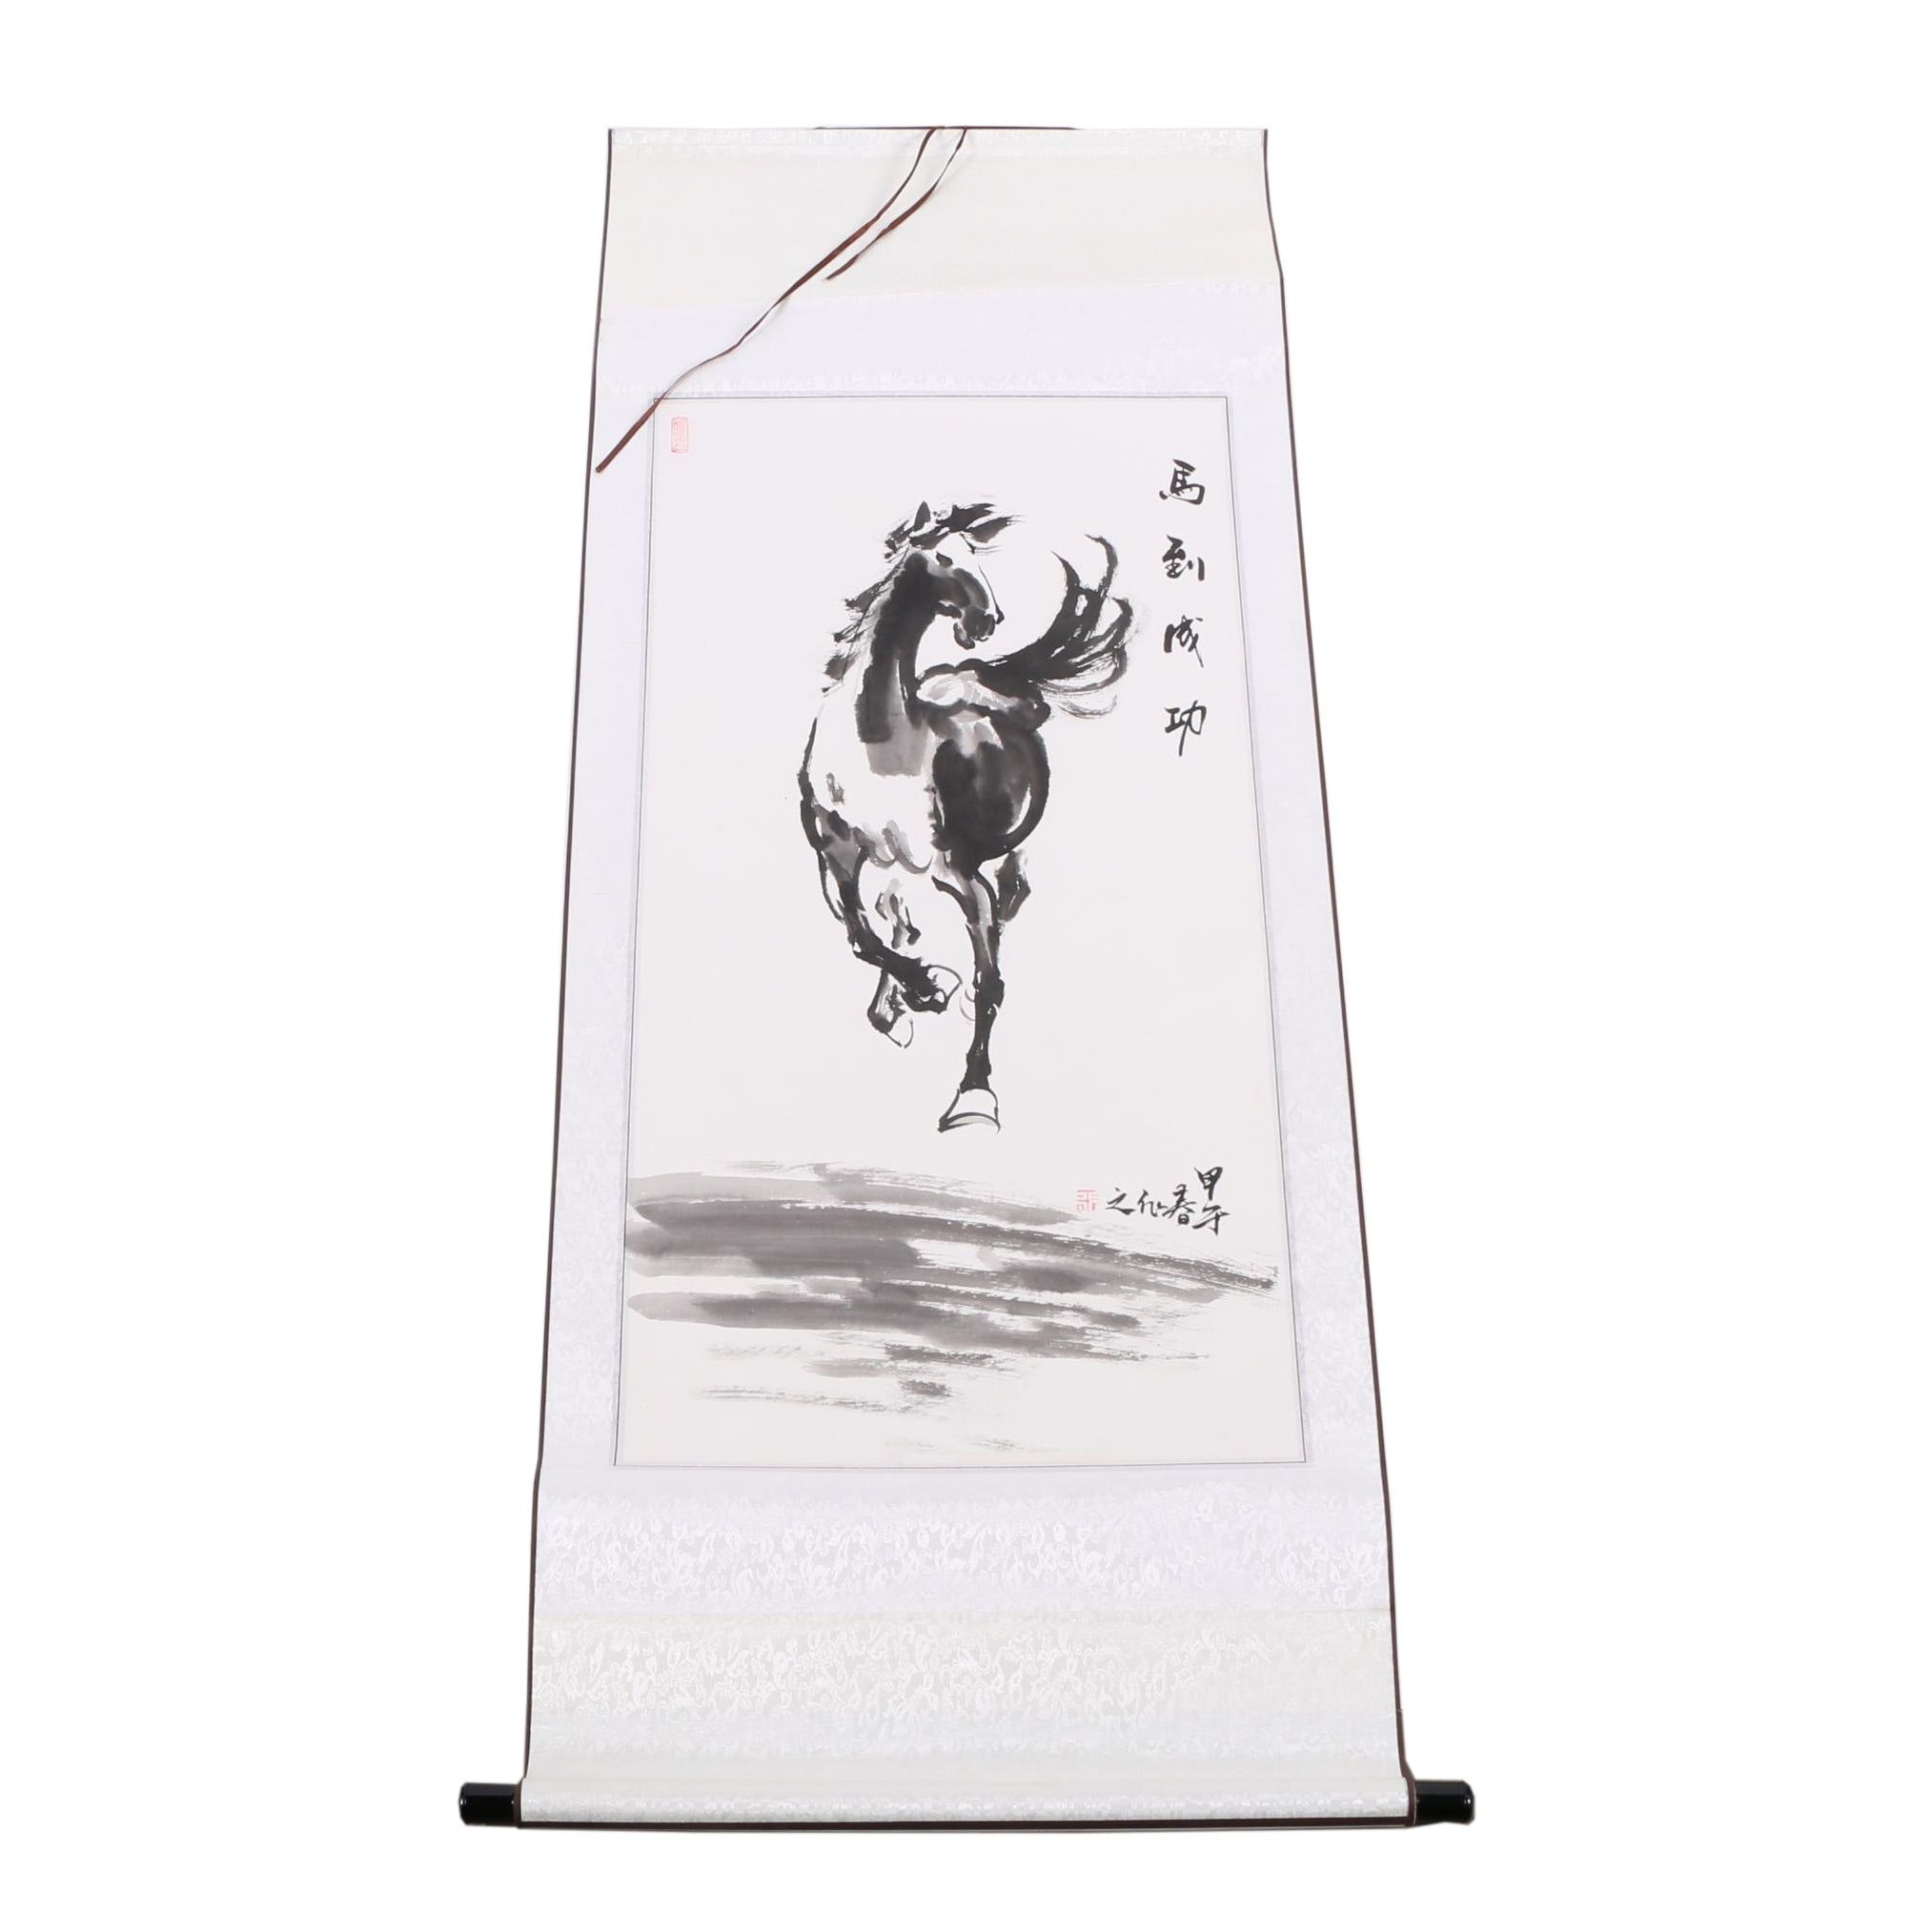 East Asian Brush Painting of a Galloping Horse on a Hanging Scroll